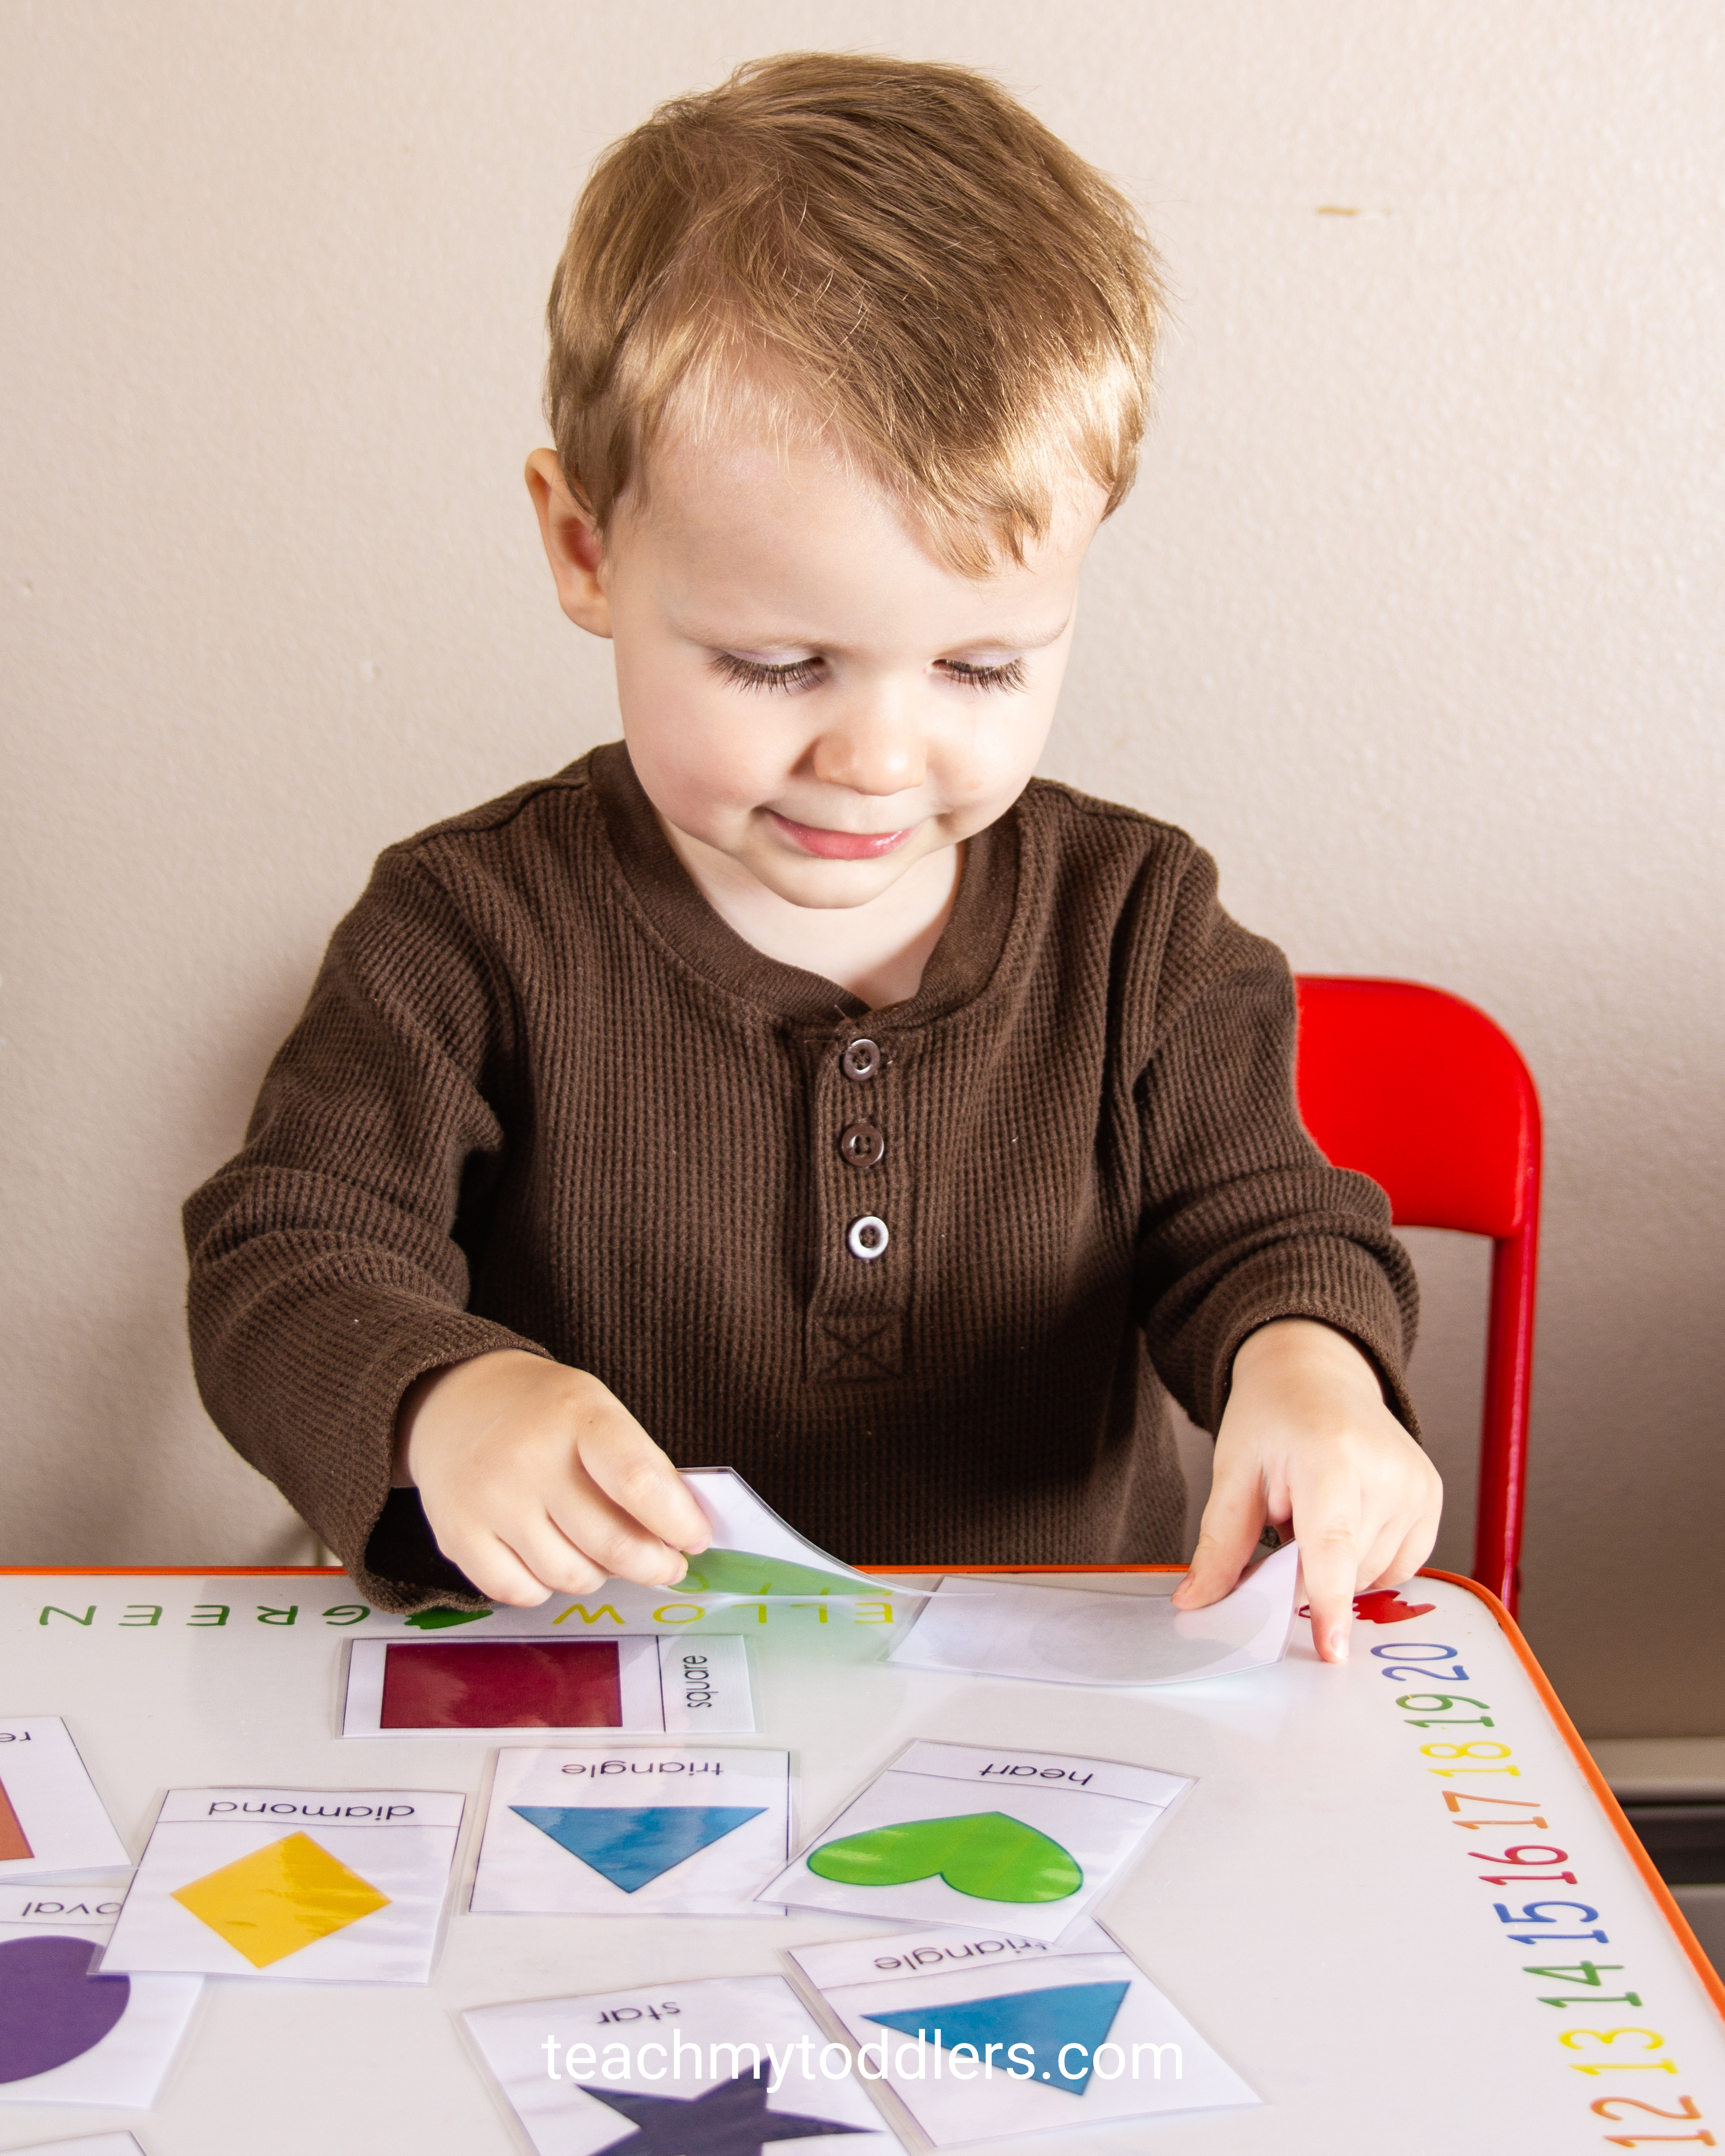 Discover how to use this shape cards activity to teach preschoolers shapes